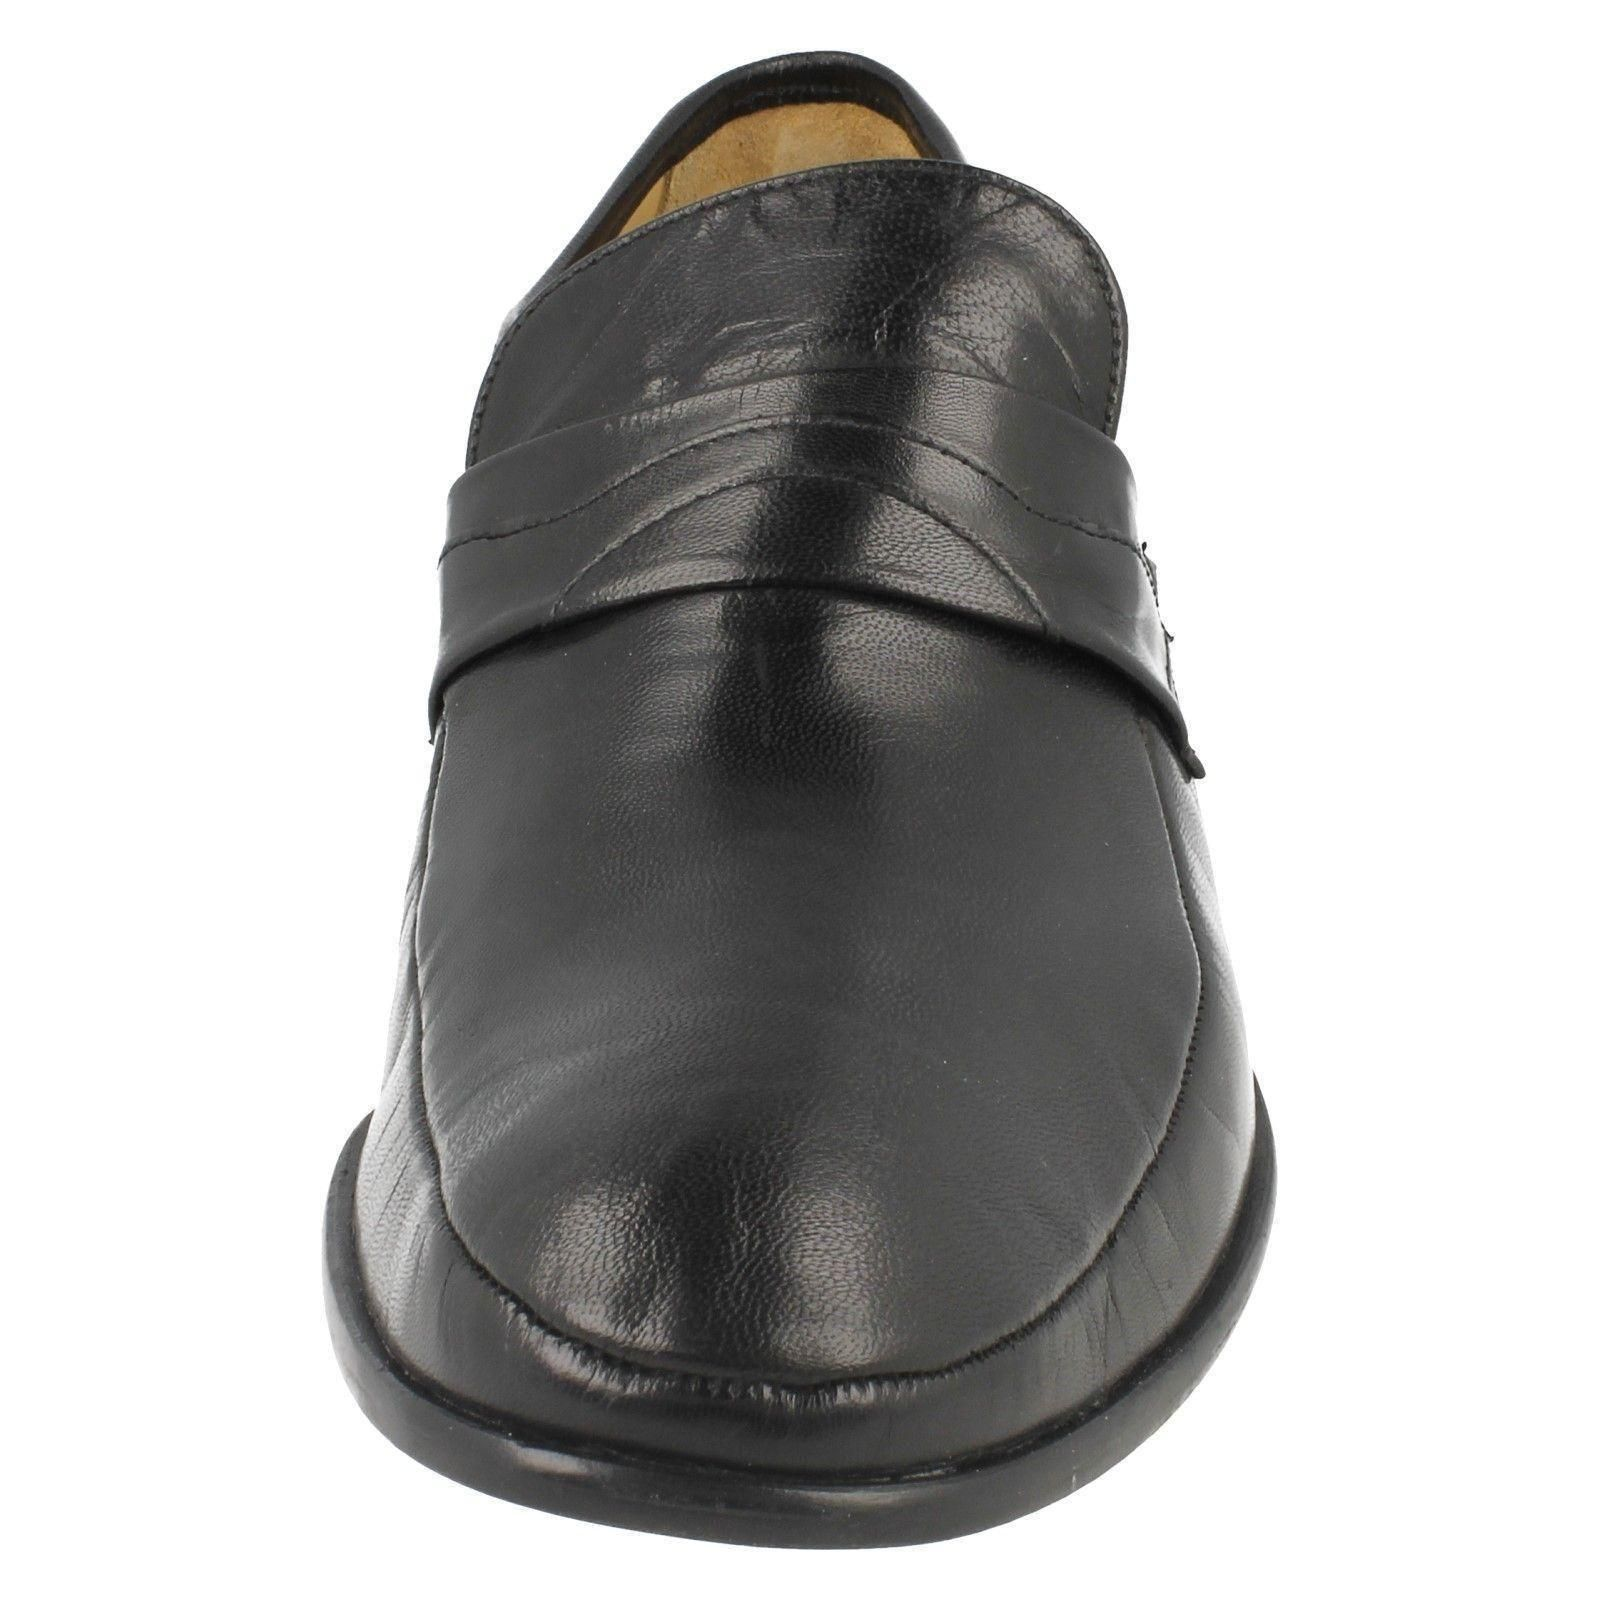 Swindon on Pelle Scarpe Thomas Blunt Slip Di Uomo xUBPq